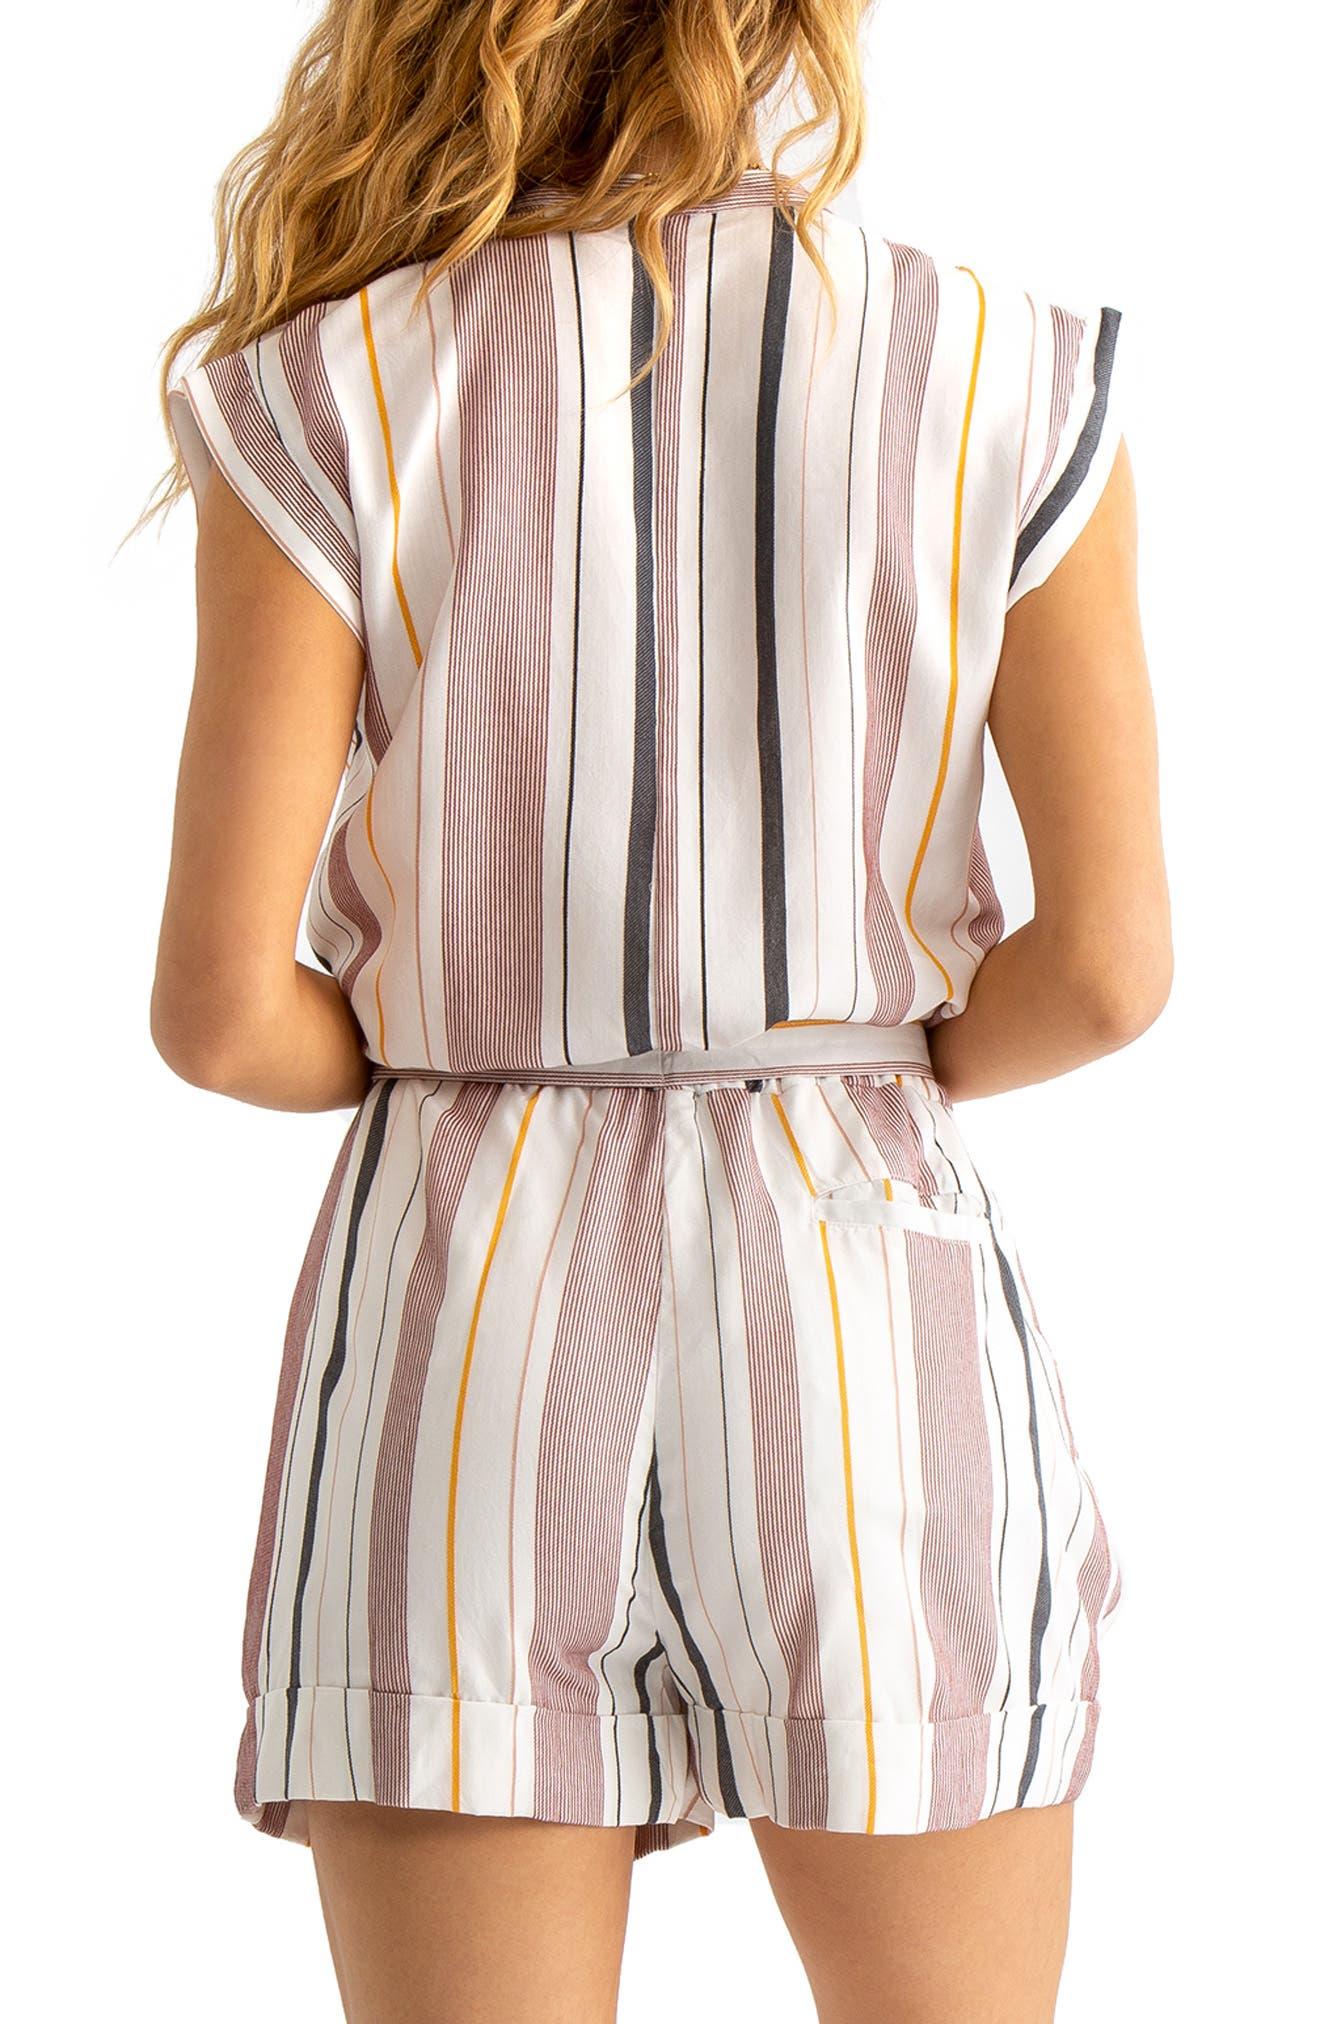 TAVIK, Tess Cover-Up Romper, Alternate thumbnail 2, color, WHITE/ BERRY STRIPE